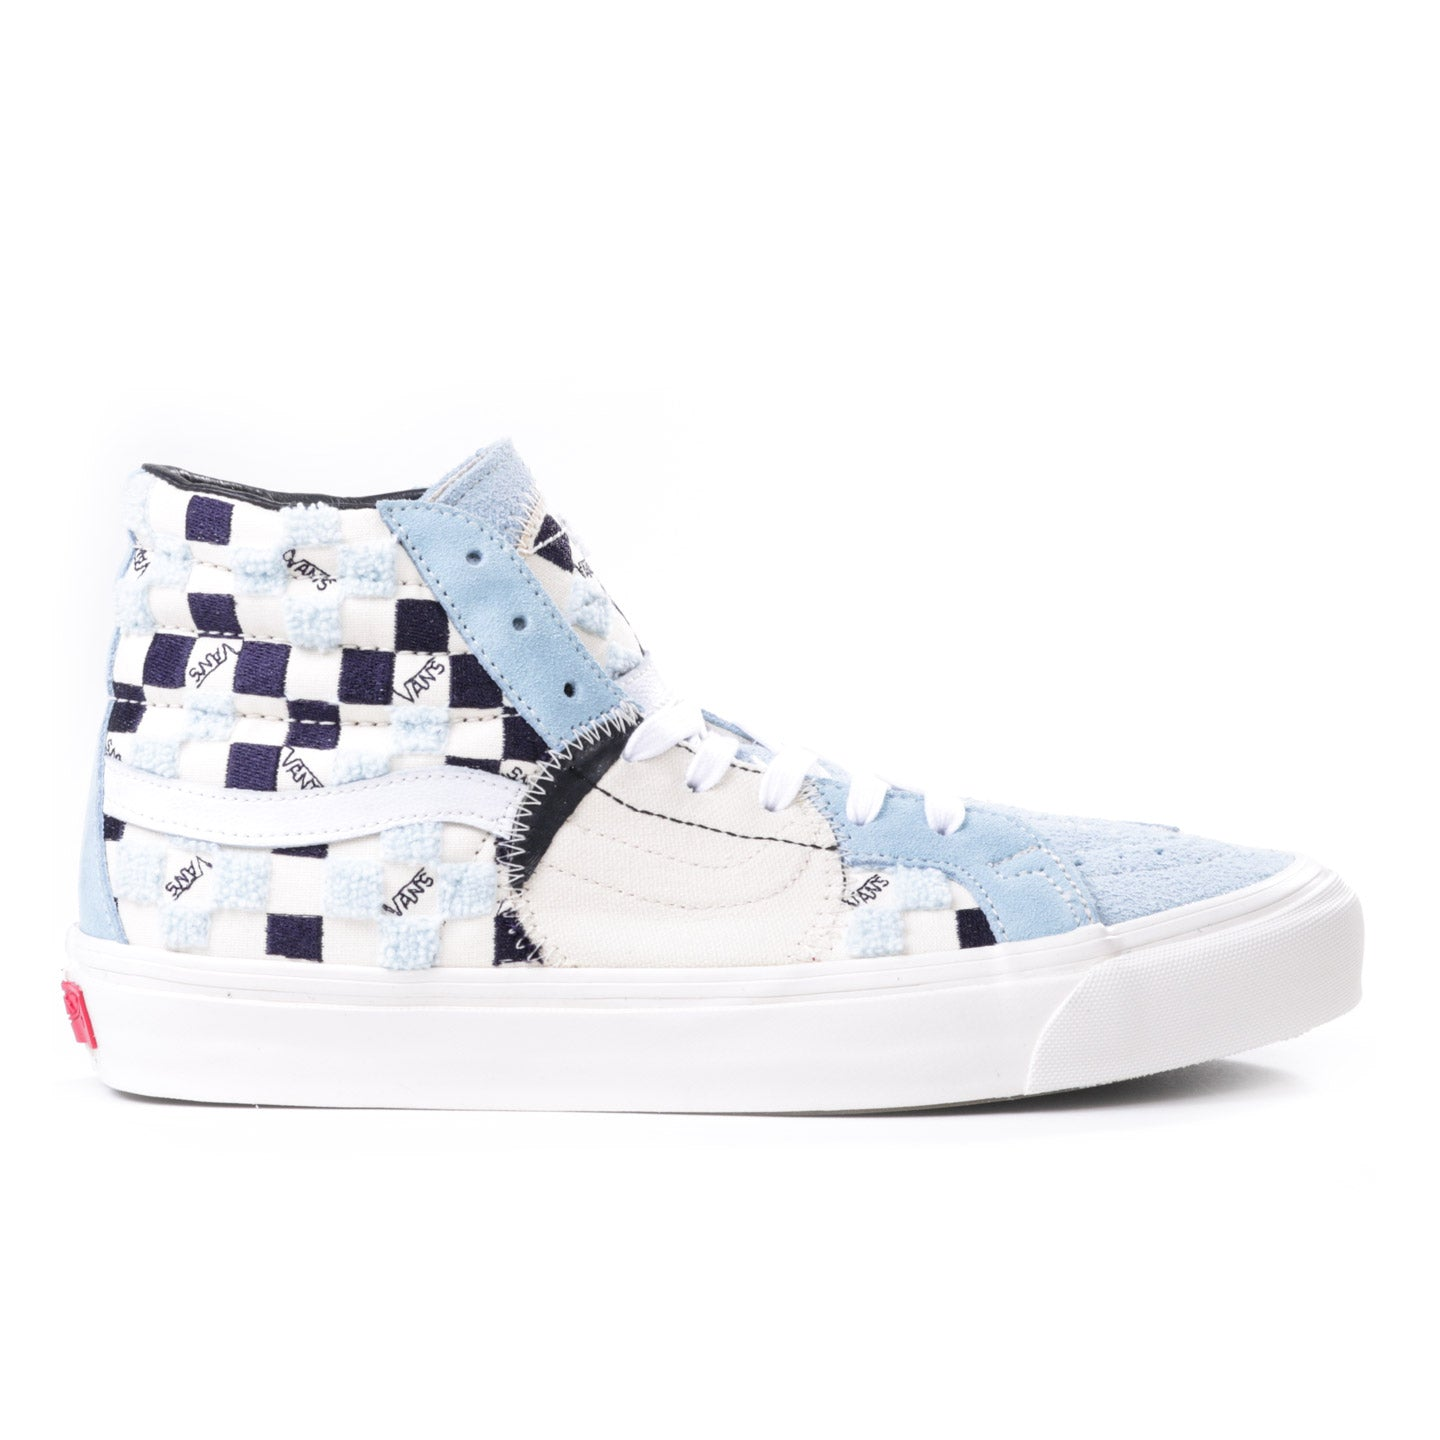 VAULT BY VANS SK8-HI BRICOLAGE LX CLASSIC WHITE / COOL BLUE